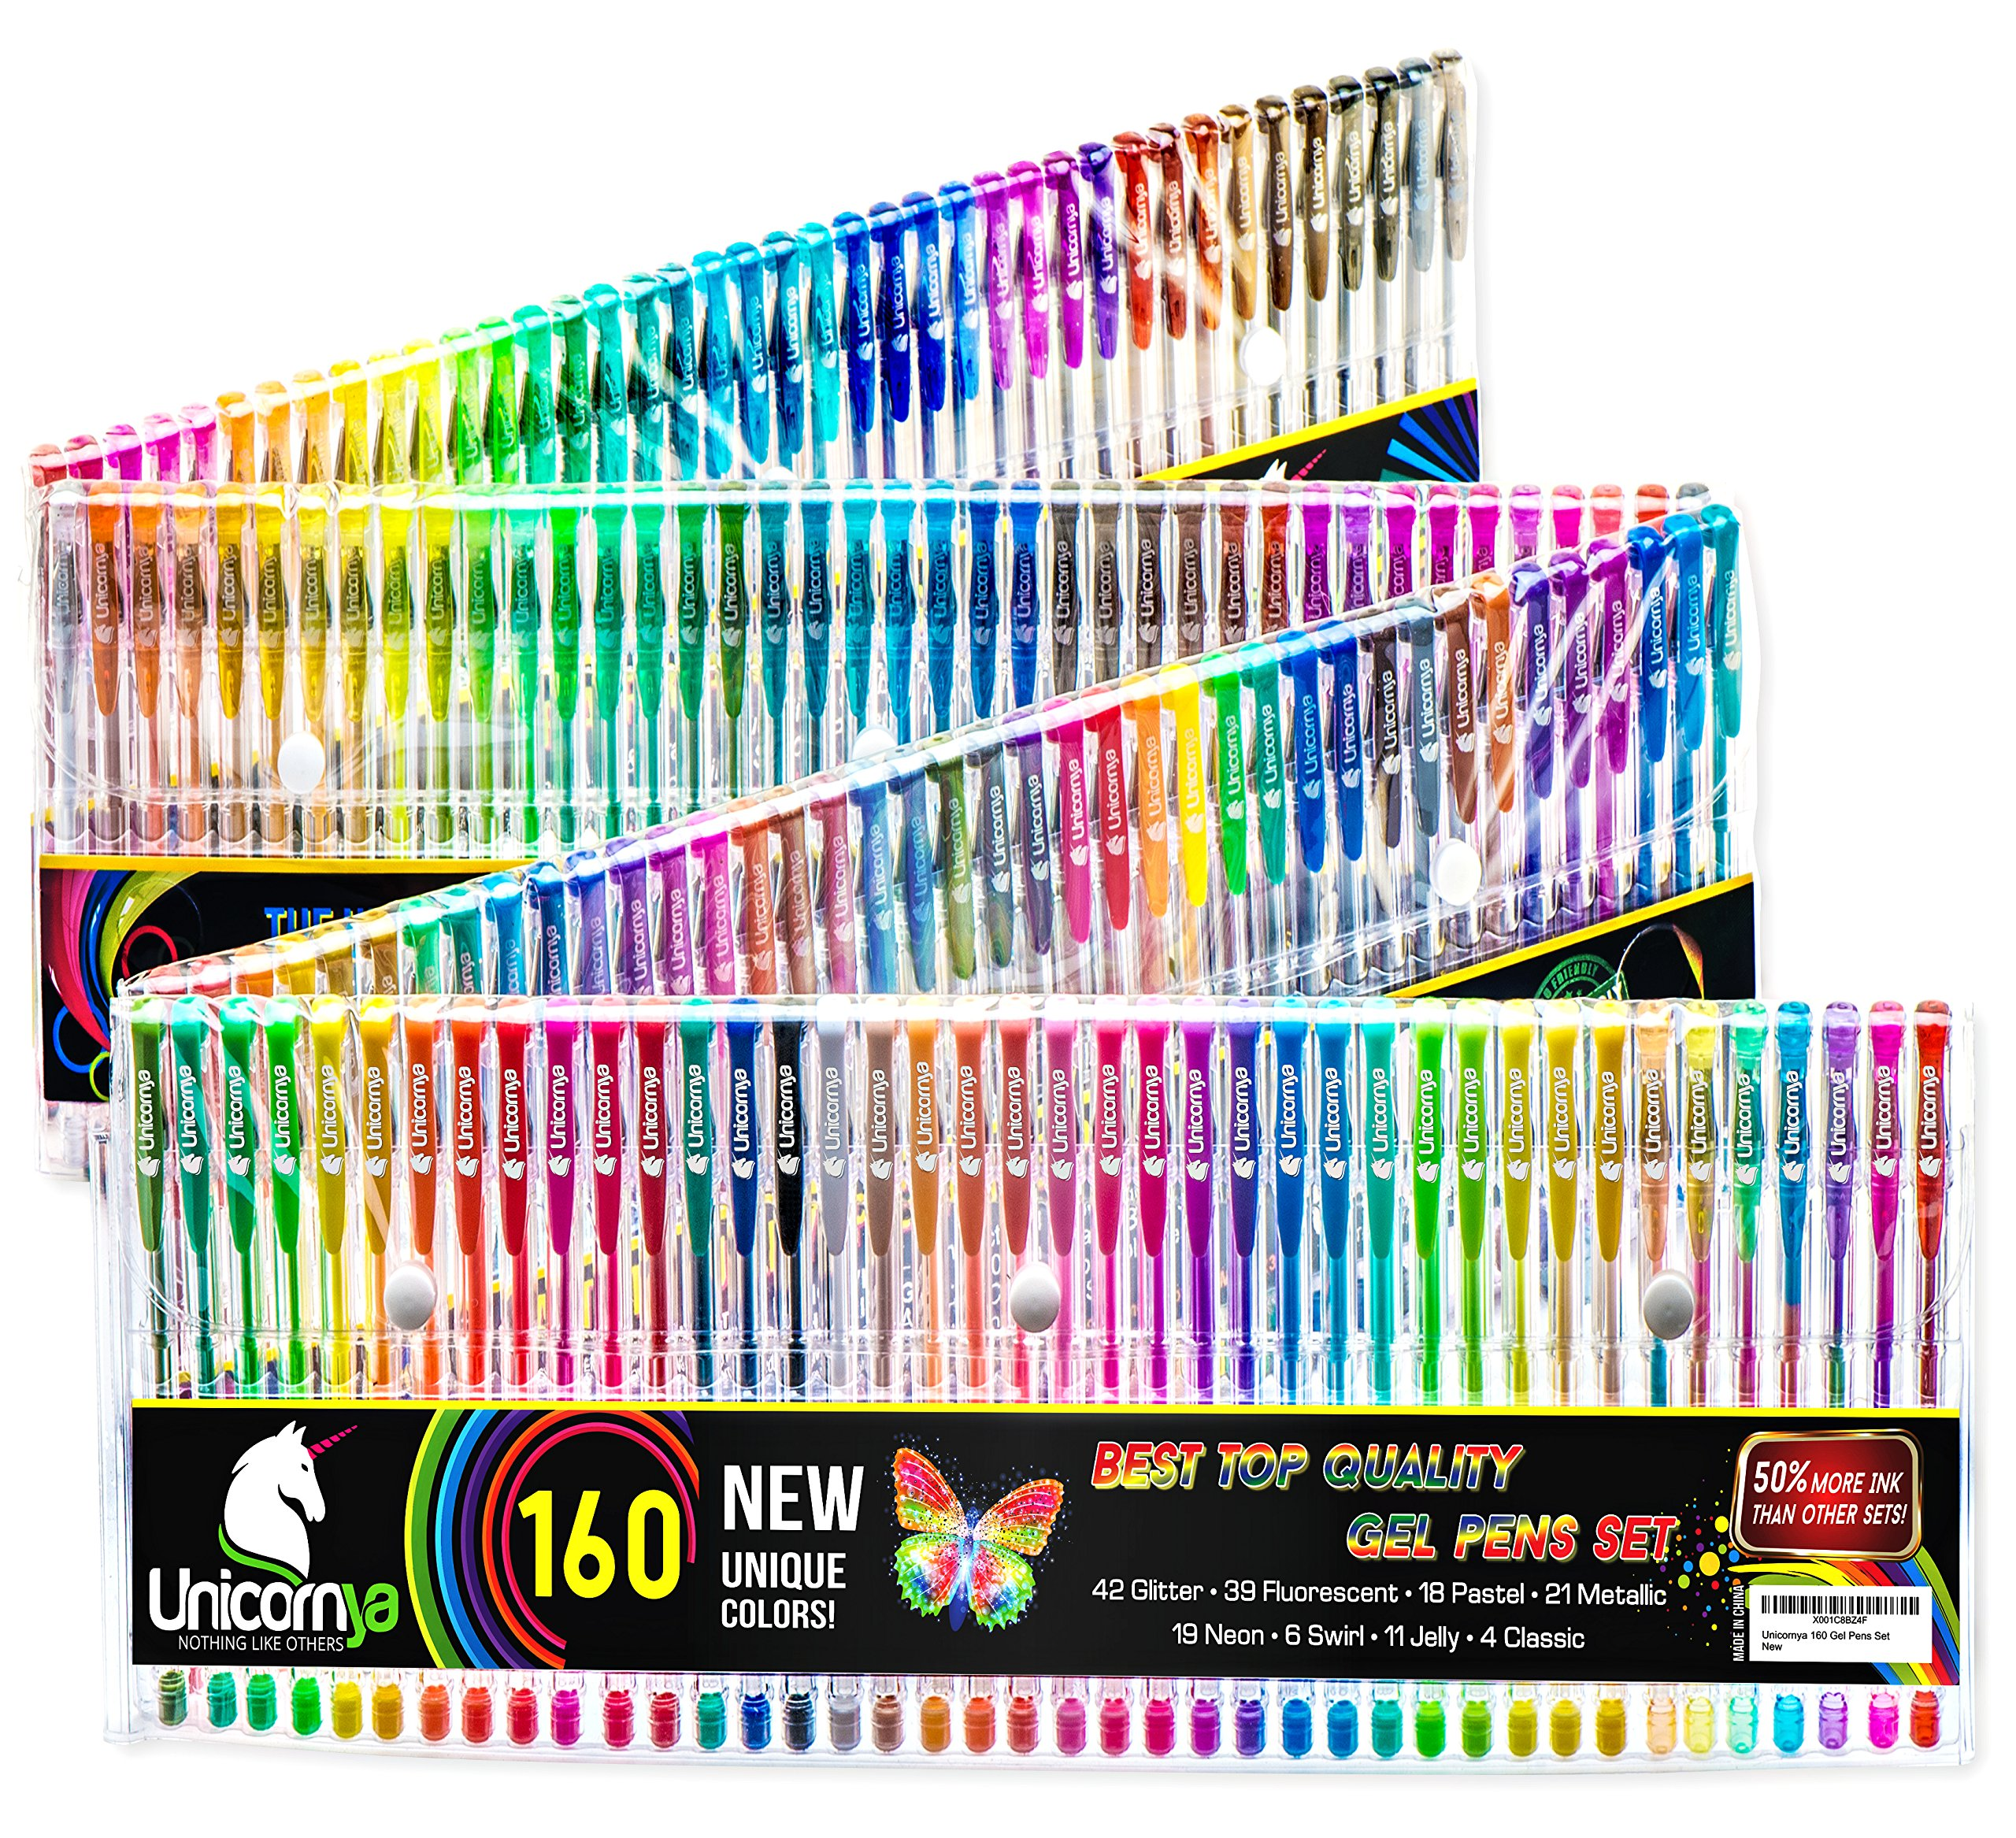 Unicornya Professional 160 Gel Pens Set - 50 Percent More Ink, for Adult Coloring Book - with Case. Unique Colors and Varieties: Glitter, Fluorescent, Pastel, Metallic, Neon. Dry Fast. Eco-Friendly